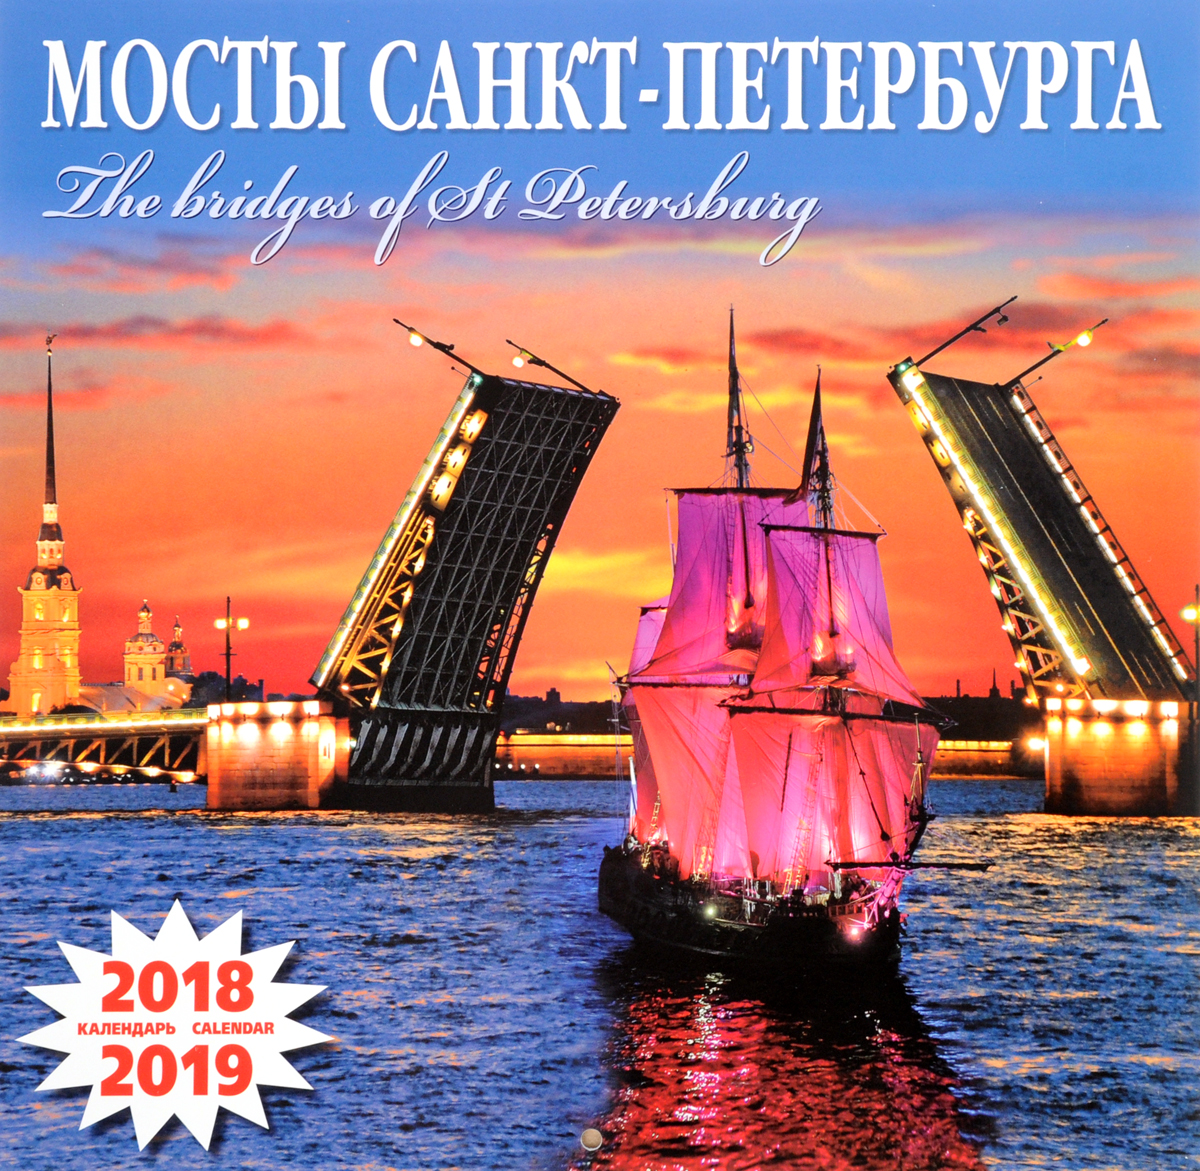 Календарь 2018-2019 (на скрепке). Мосты Санкт-Петербурга / The Bridges of St. Petersburg car driving glasses eyewear uv protection men women sunglasses goggles hd yellow lenses sunglasses night vision